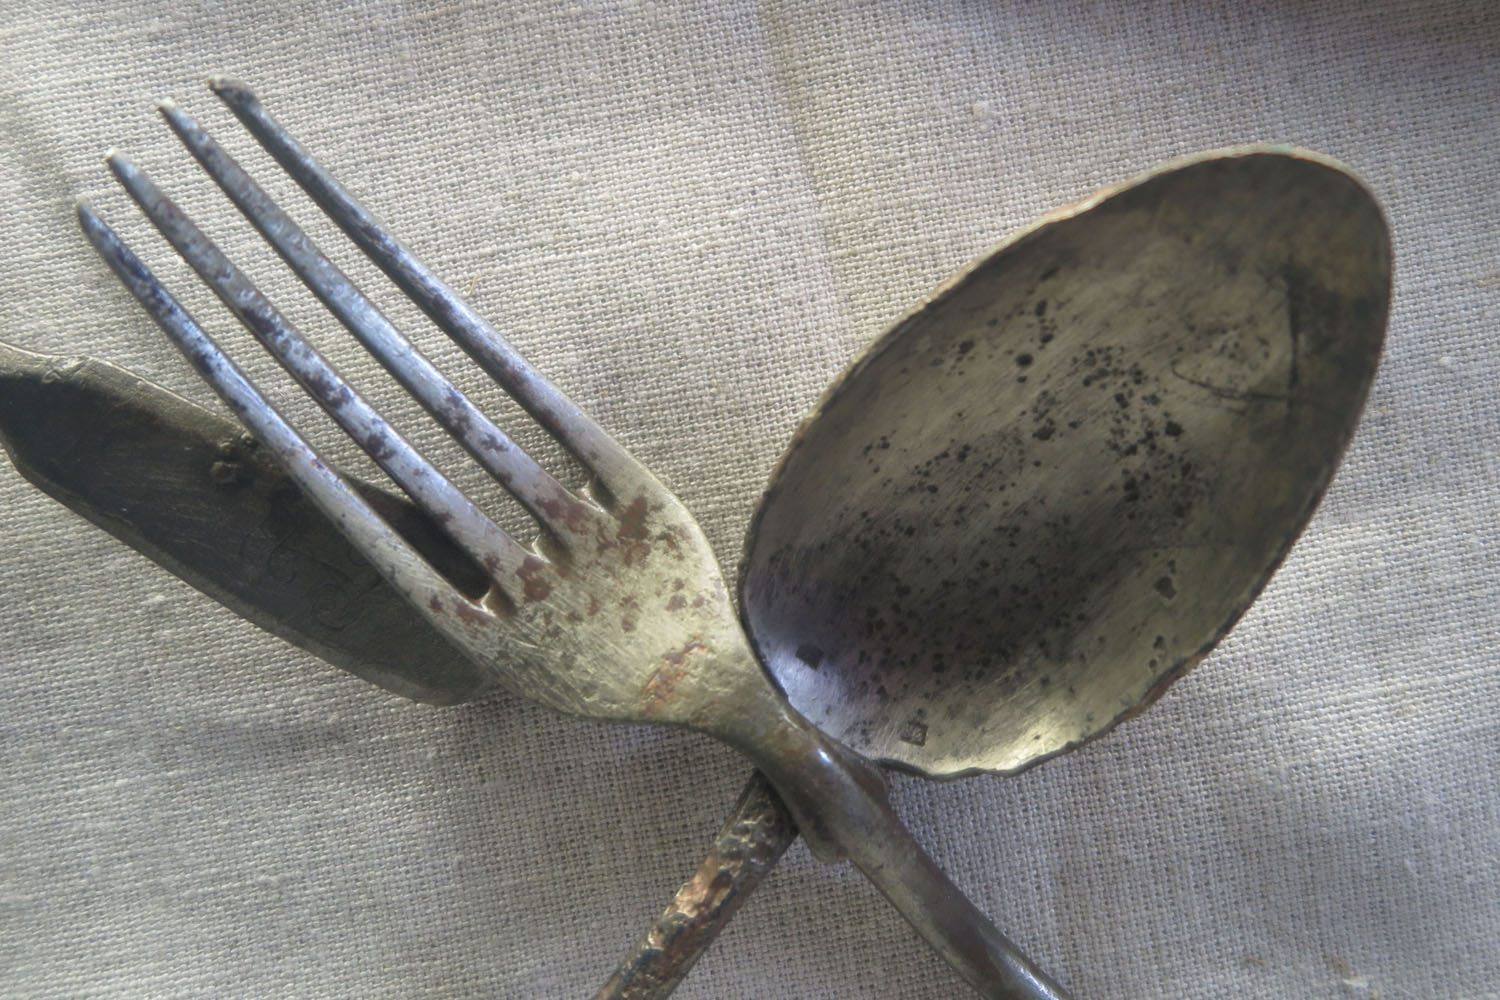 Poland-Auschwitz-Plunder-Utensils